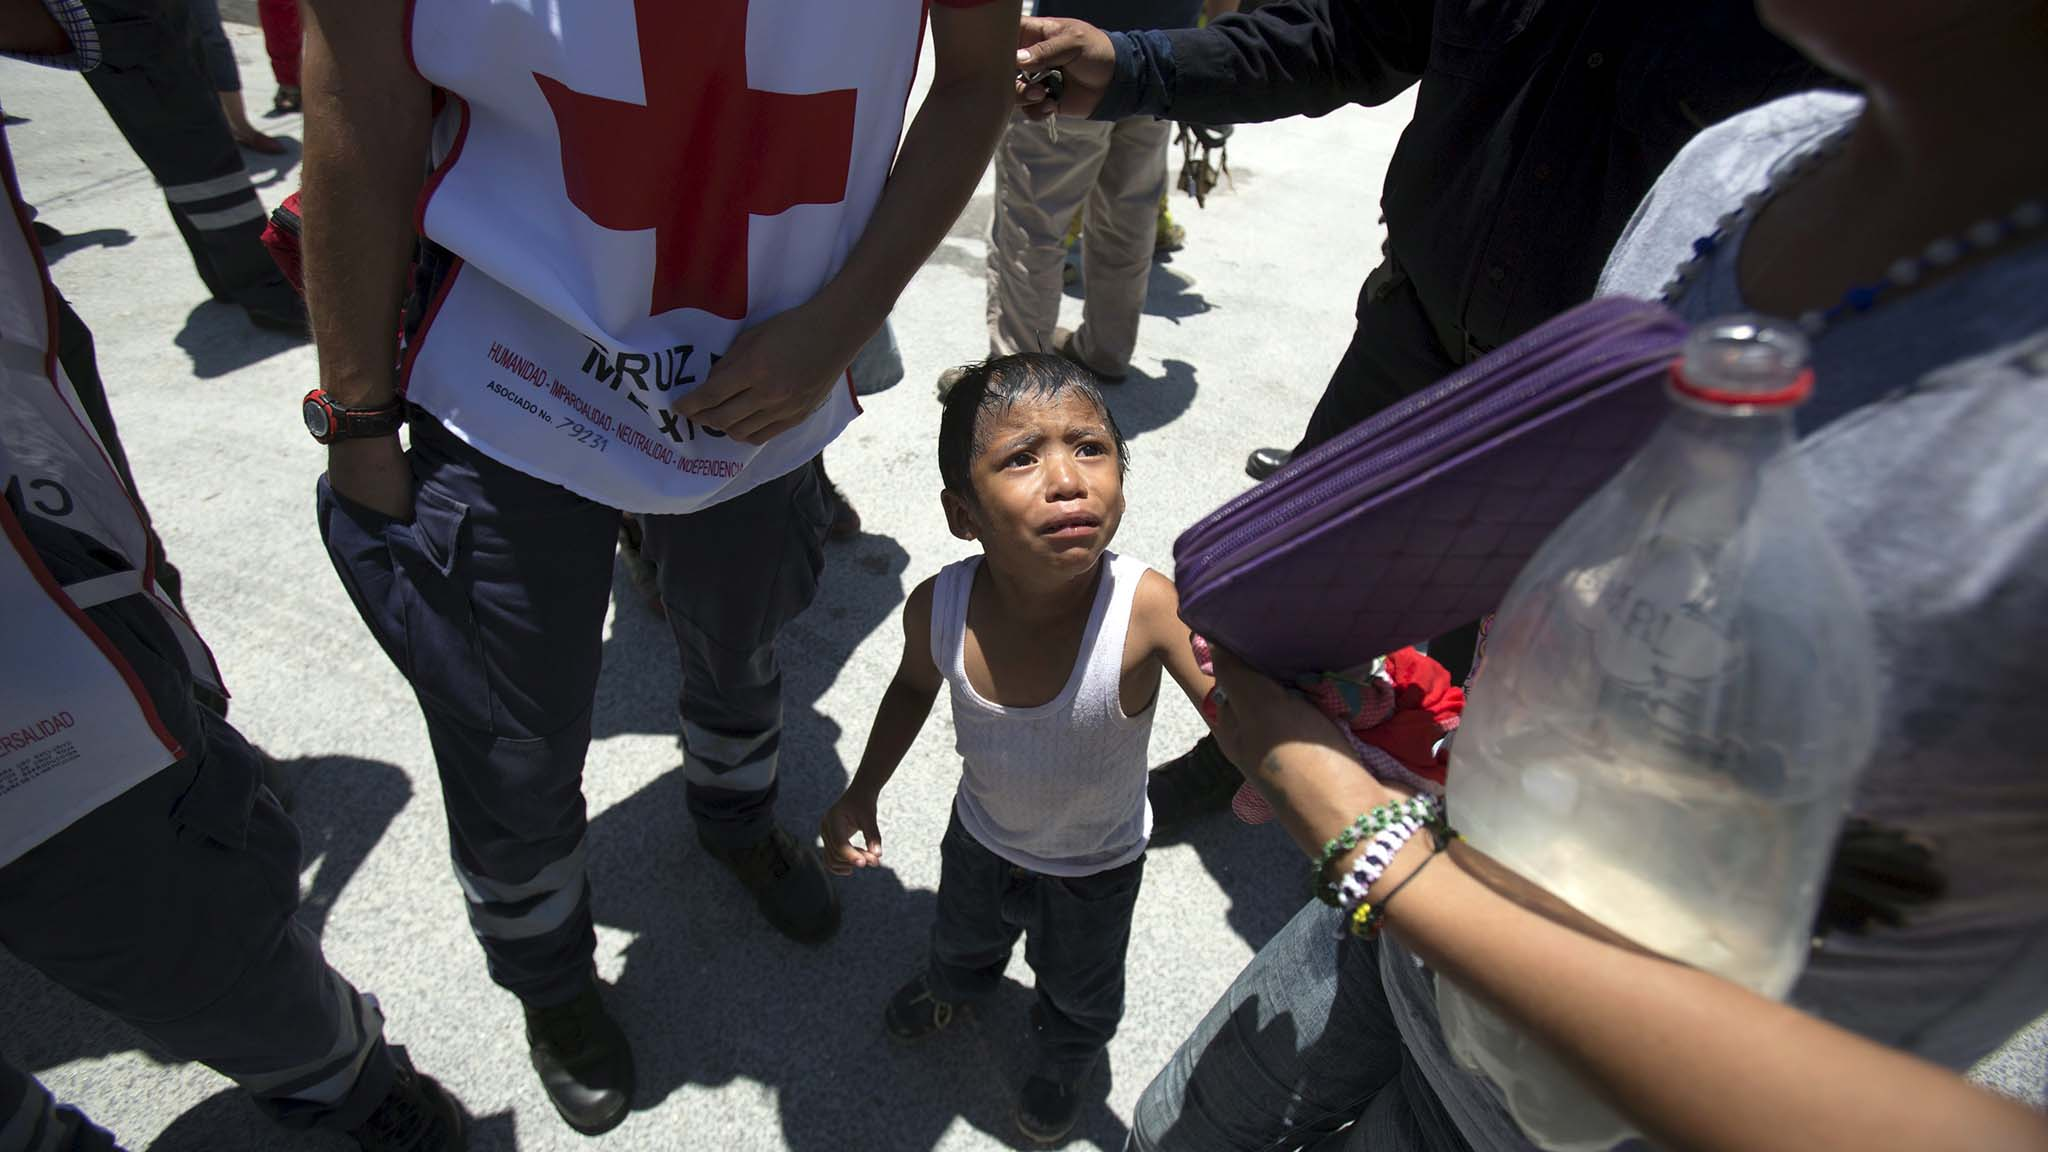 A child experiencing shock is seen next to a Red Cross paramedic outside the jail during a clash of rival groups in the prison of Cancun